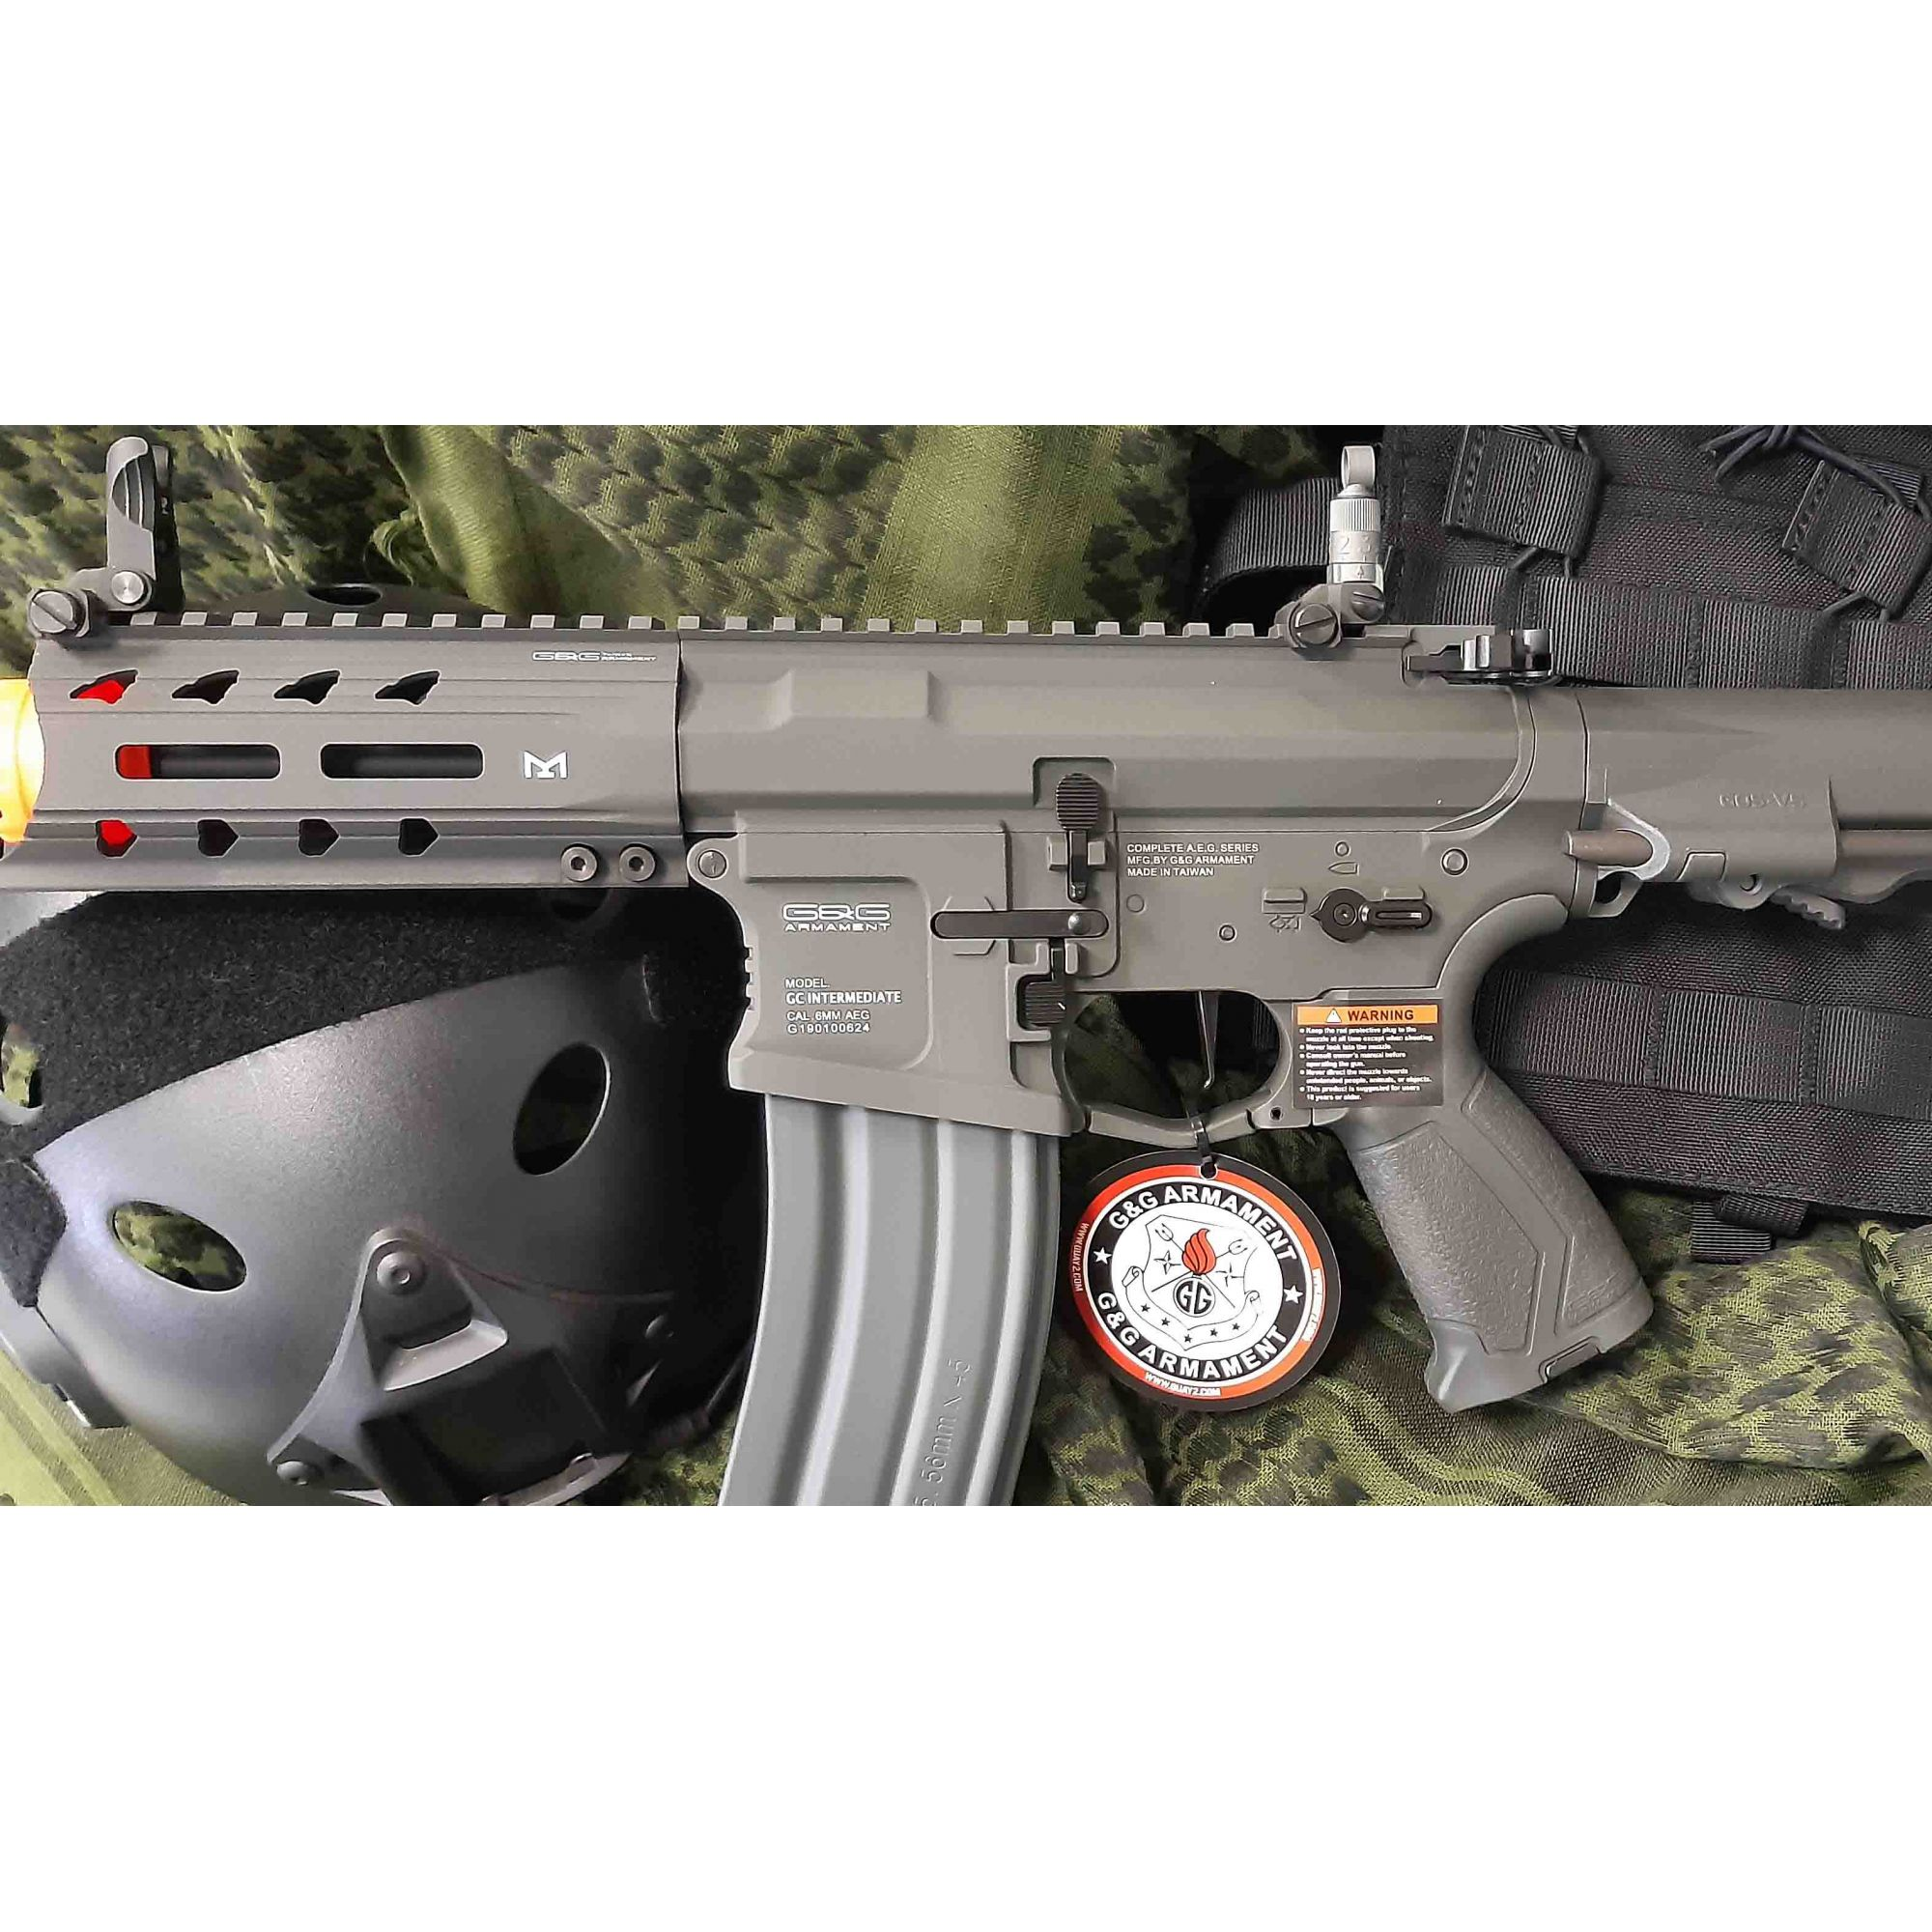 Rifle Airsoft AEG M4 ARP 556 Grey Full Metal - G&G - Calibre 6 mm